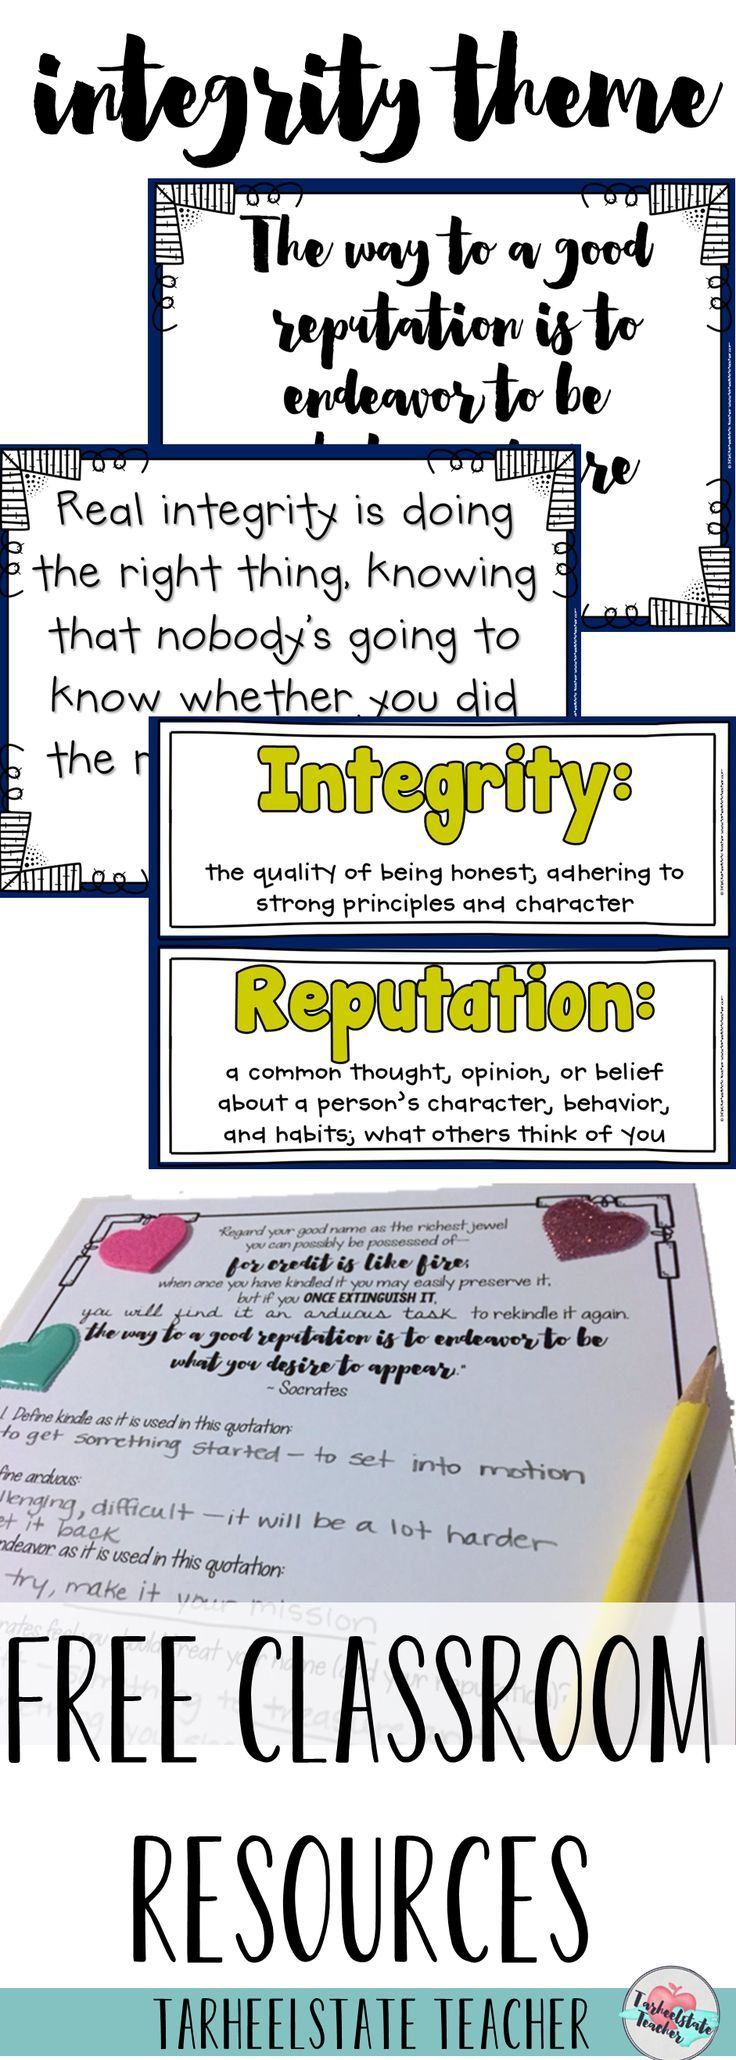 best ideas about honesty lesson fhe lessons click for activities and lesson ideas for teaching your students about integrity honesty